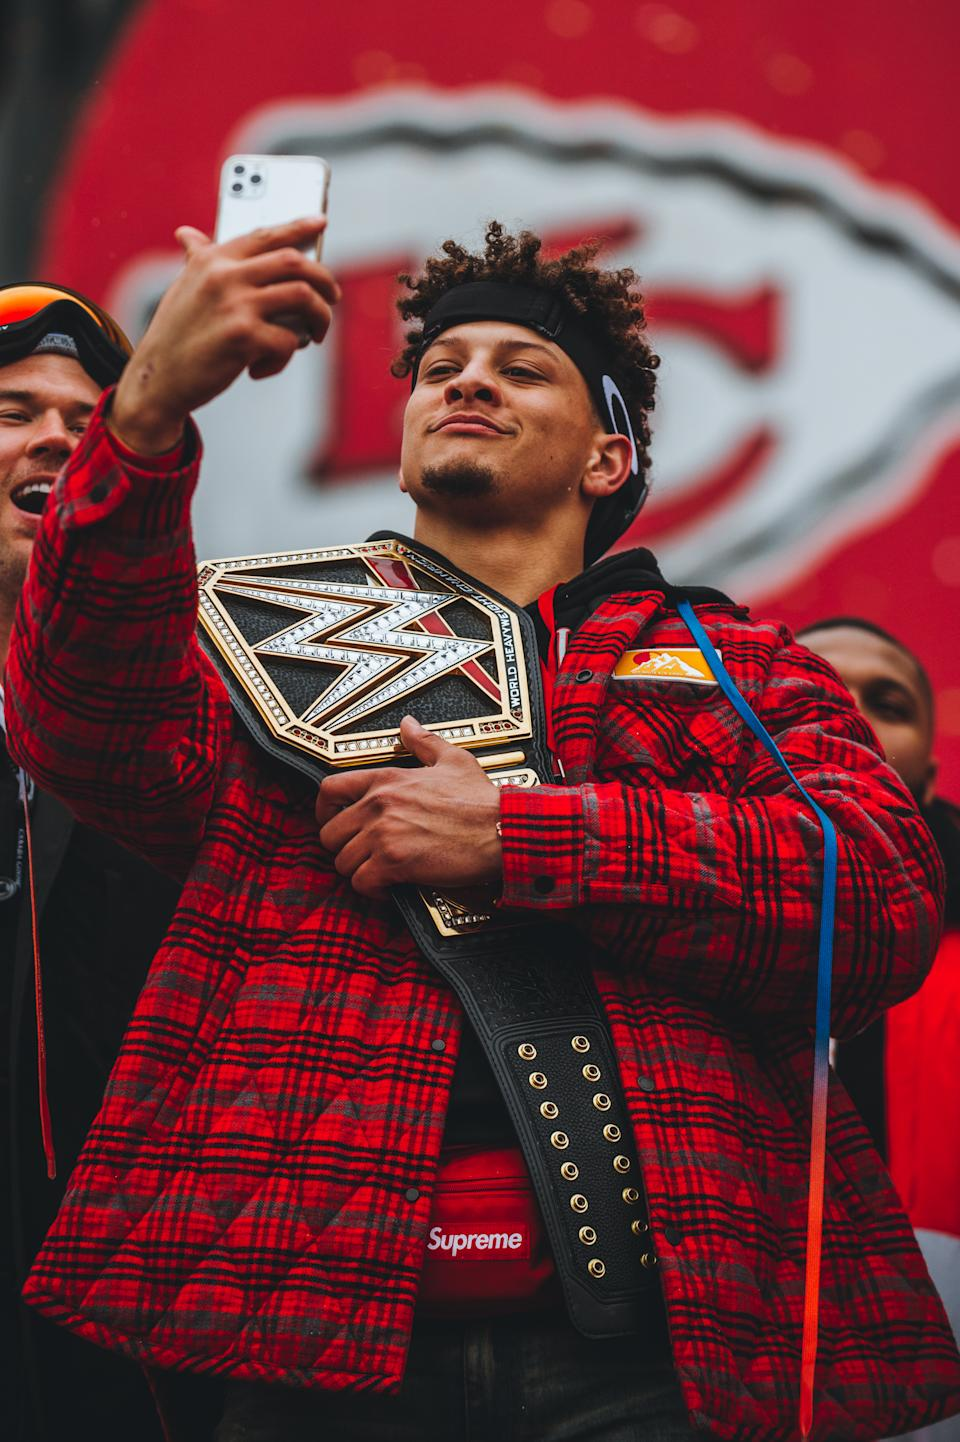 Kansas City Chiefs QB Patrick Mahomes poses with a custom-made WWE championship belt days after winning Super Bowl LIV. (Photo credit: Kansas City Chiefs)